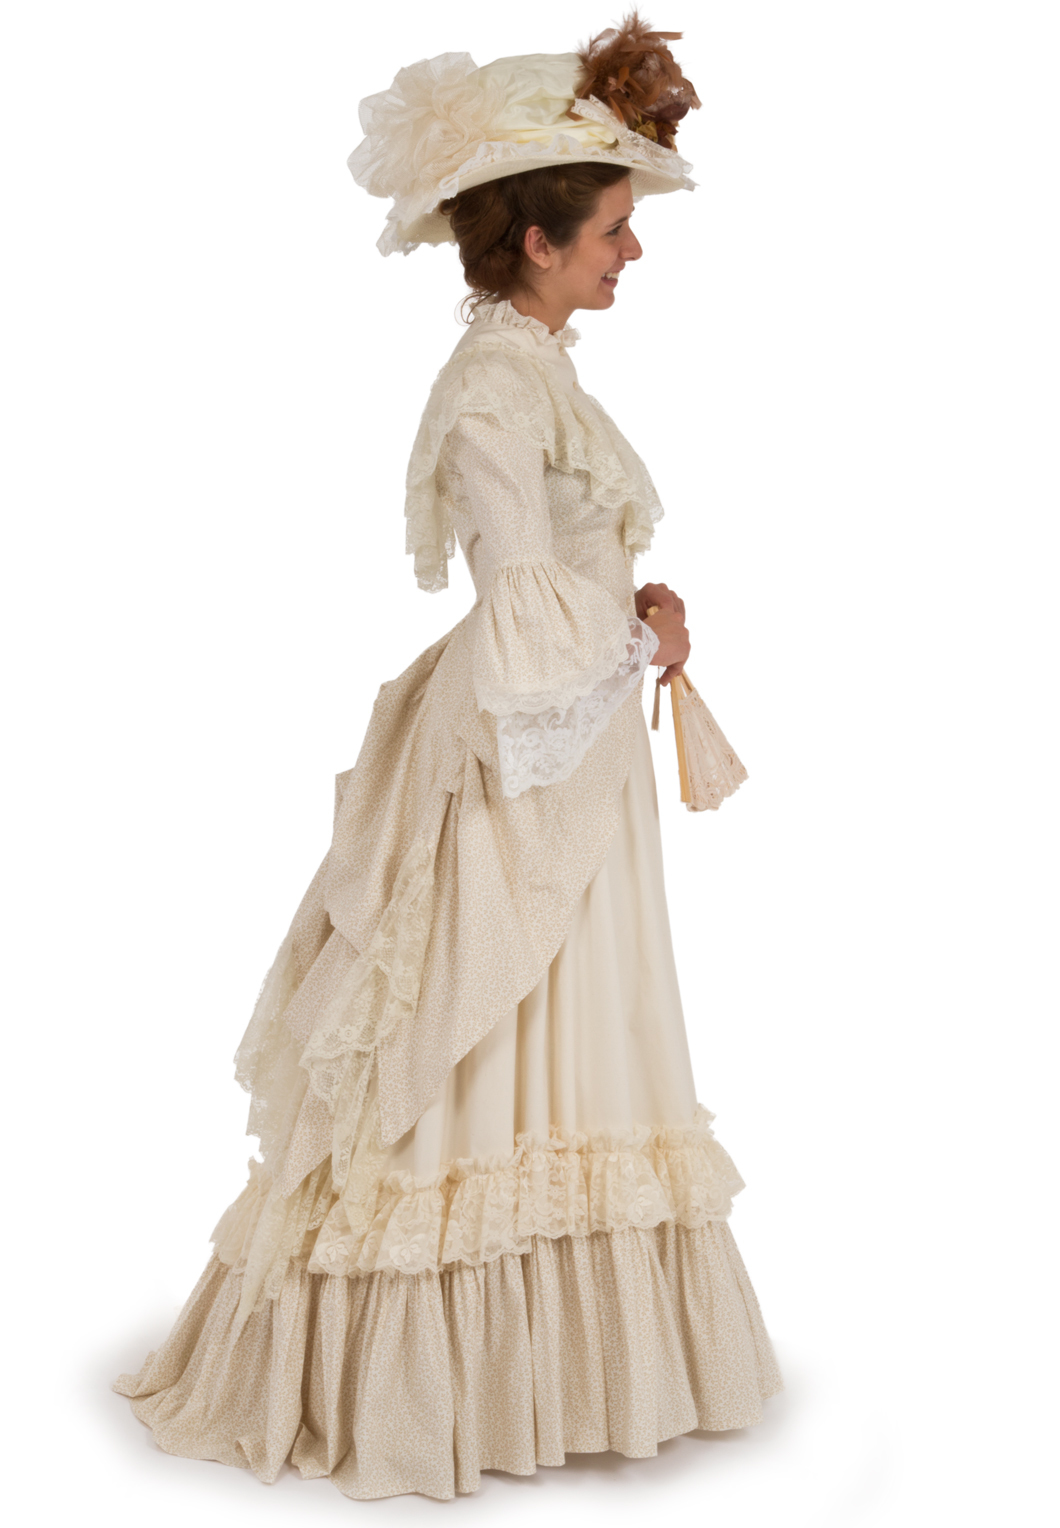 The victorian wedding dress belle epoque recollections blog for Old west wedding dresses